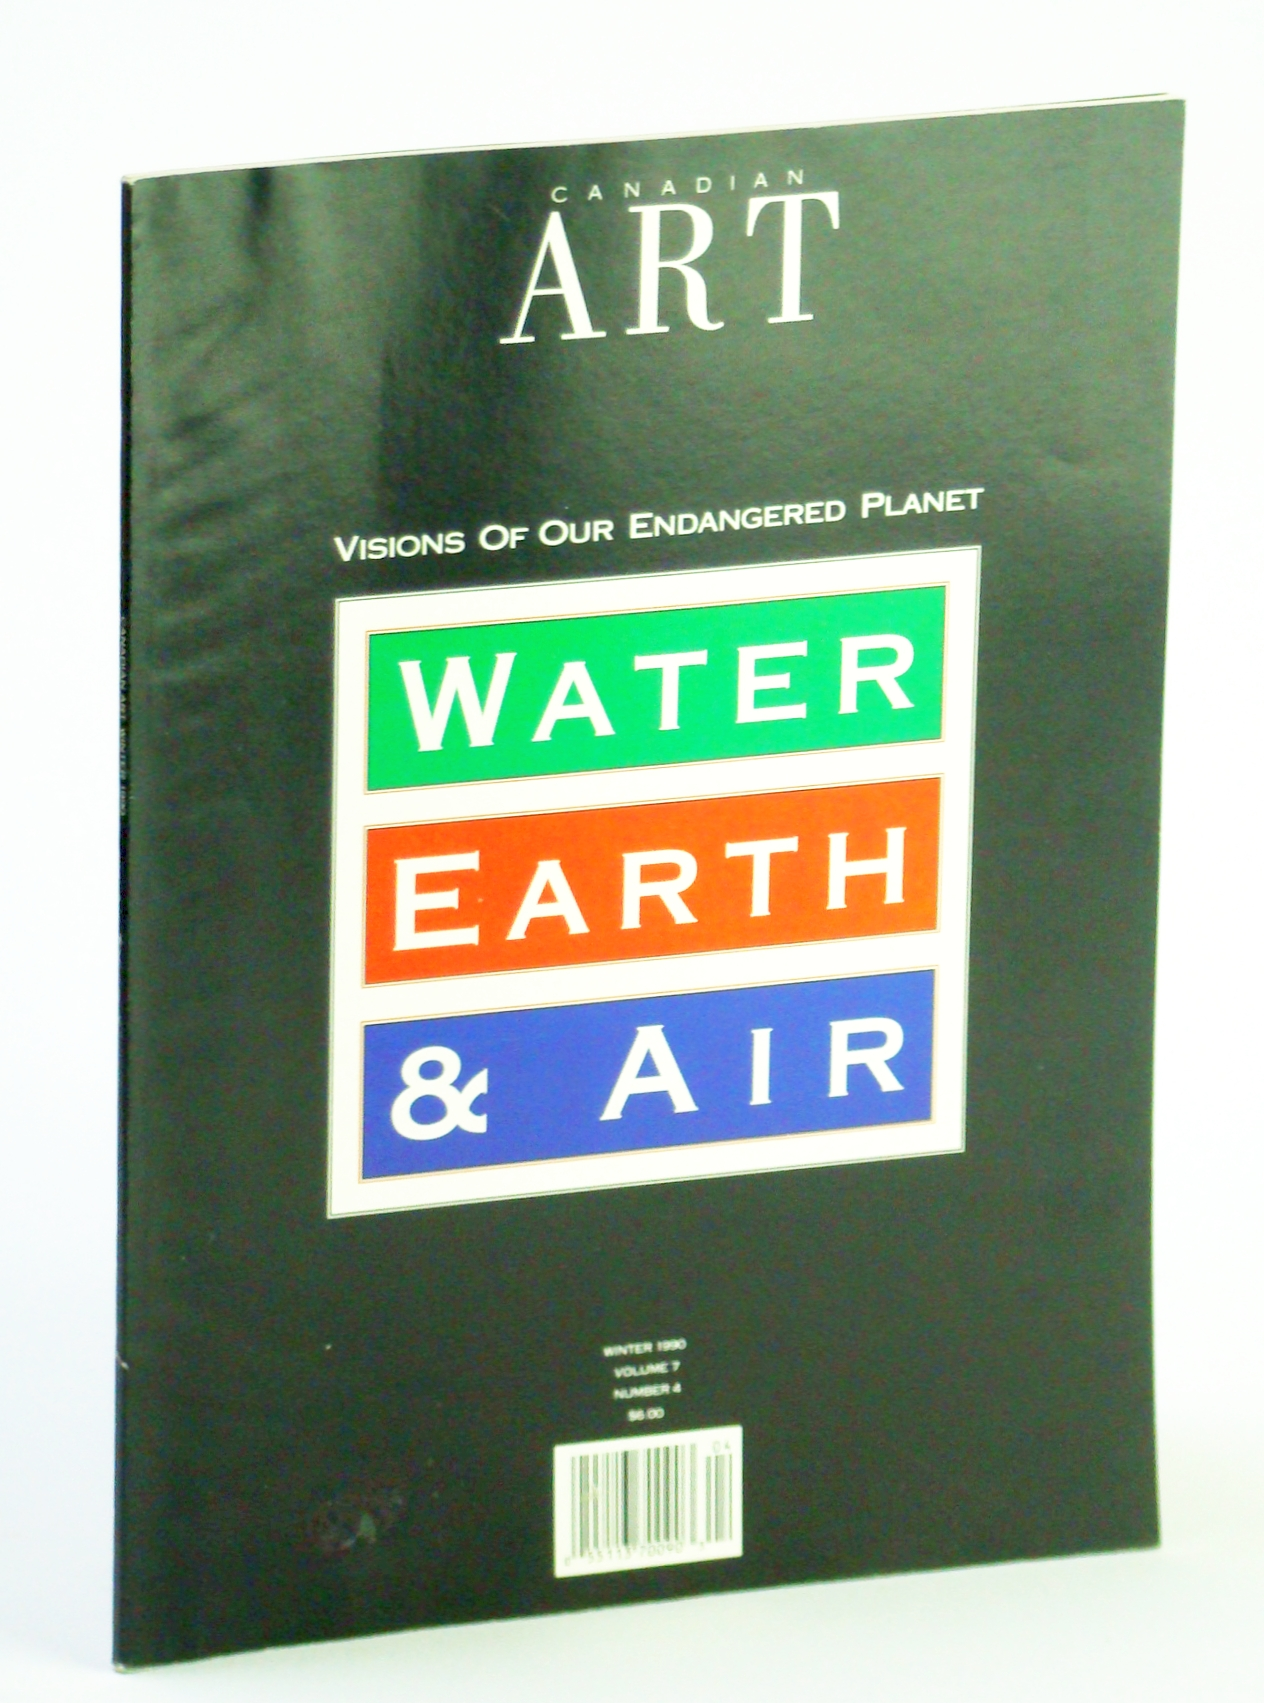 Image for Canadian Art (Magazine), Winter 1990, Volume 7, Number 4 - Visions of Our Endangered Planet